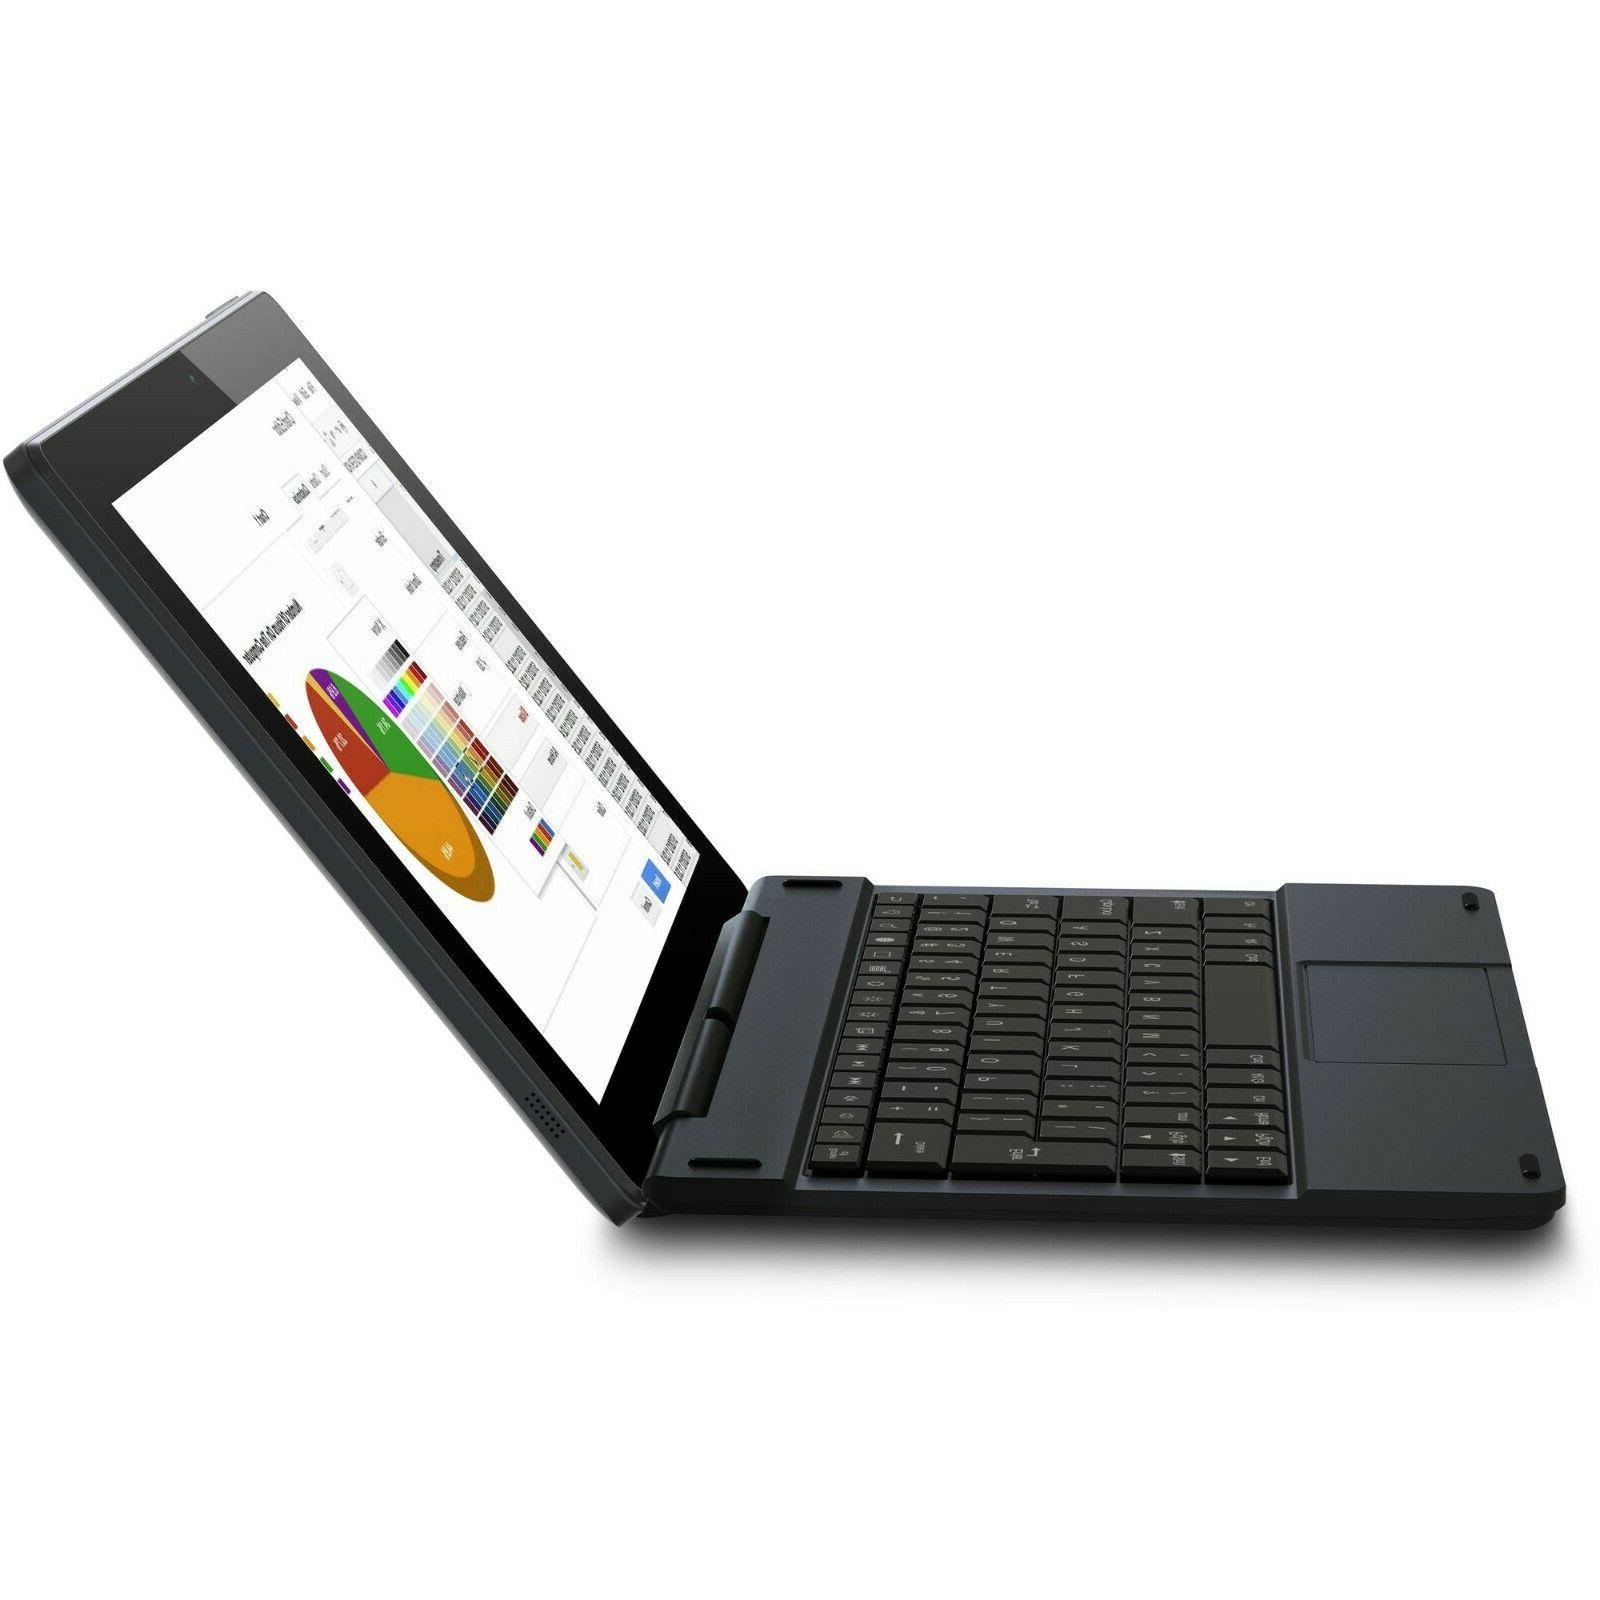 Computer Computer/Tablet On Sale